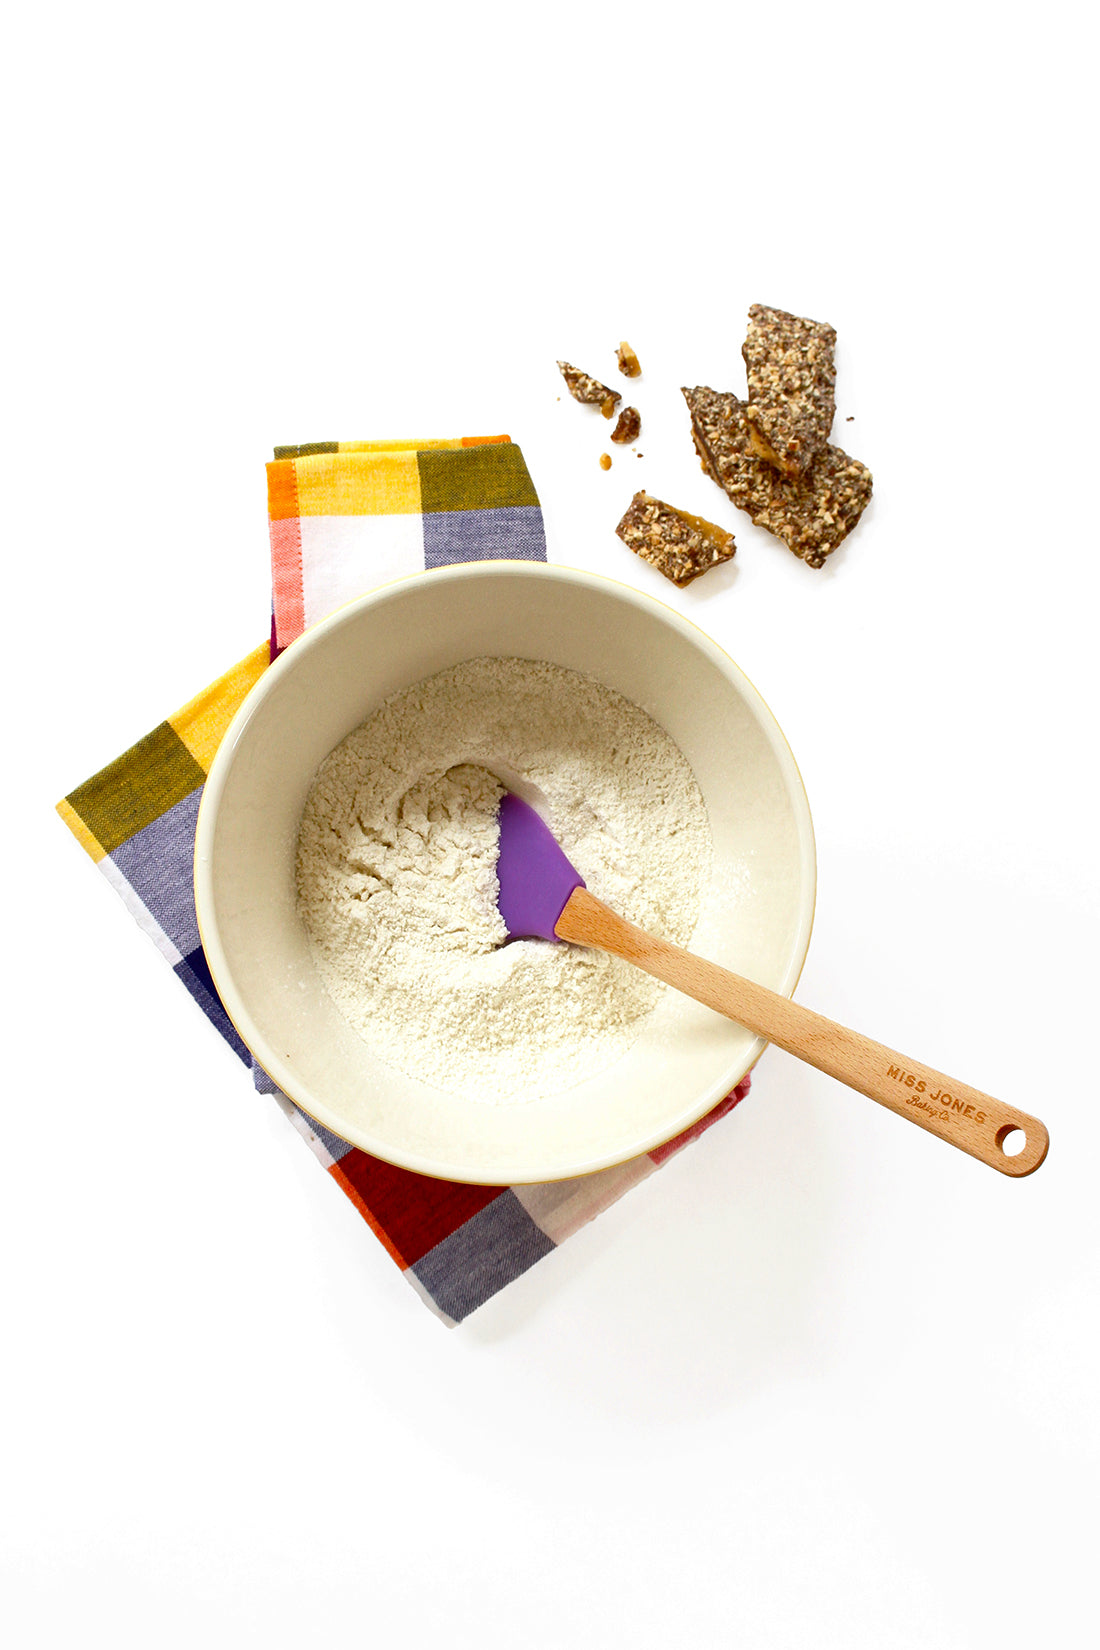 Image from above of Miss Jones Vanilla Cake mix in a mixing bowl next to toffee slices for Miss Jones Baking Co Sarah's Toffeedoodles